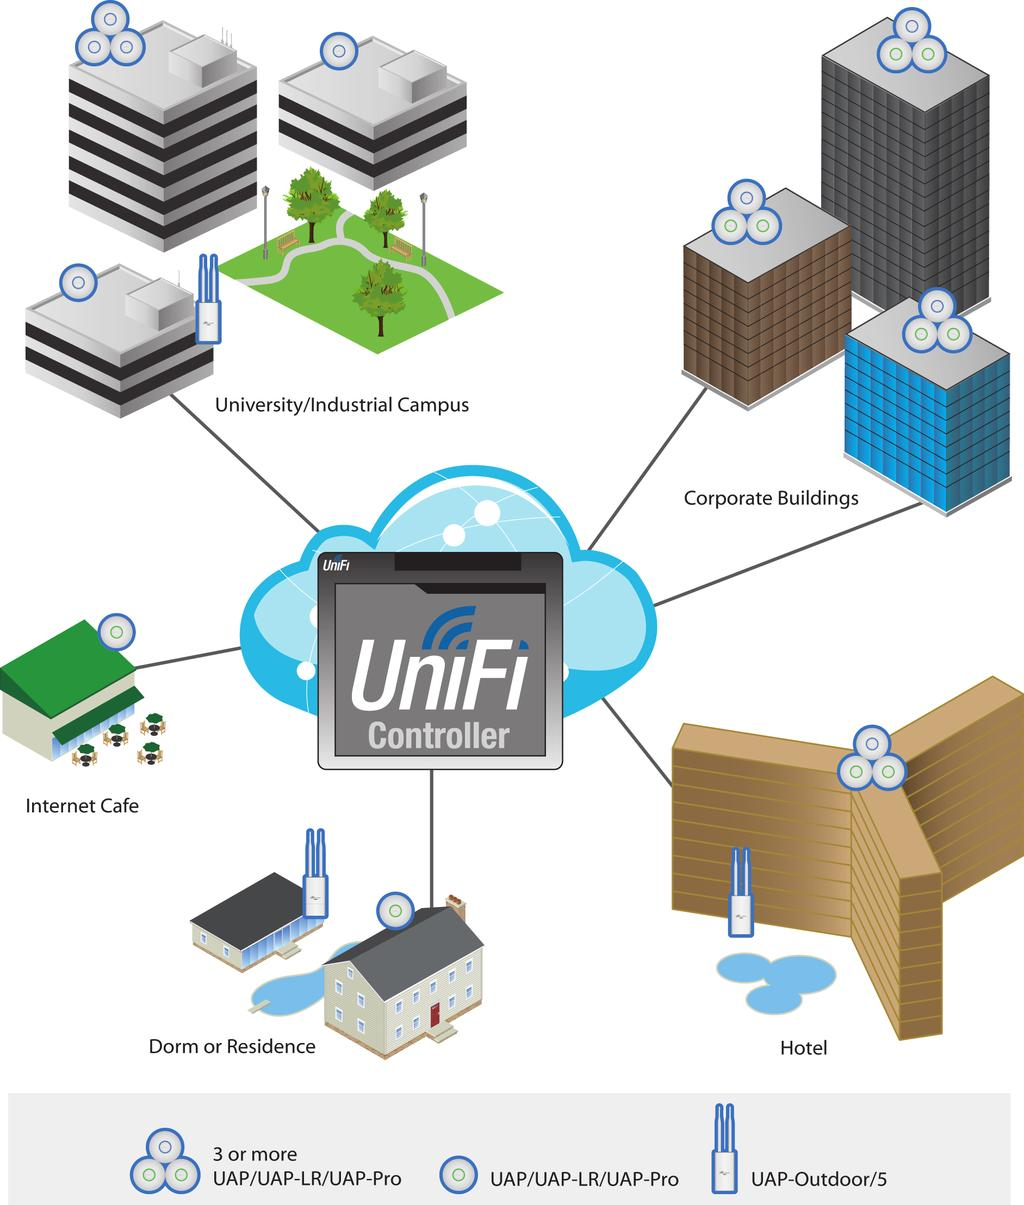 Extend Your Coverage With the UniFi Controller software running in a NOC or in the cloud, administrators can extend and centrally manage wide areas of indoor and outdoor coverage using any